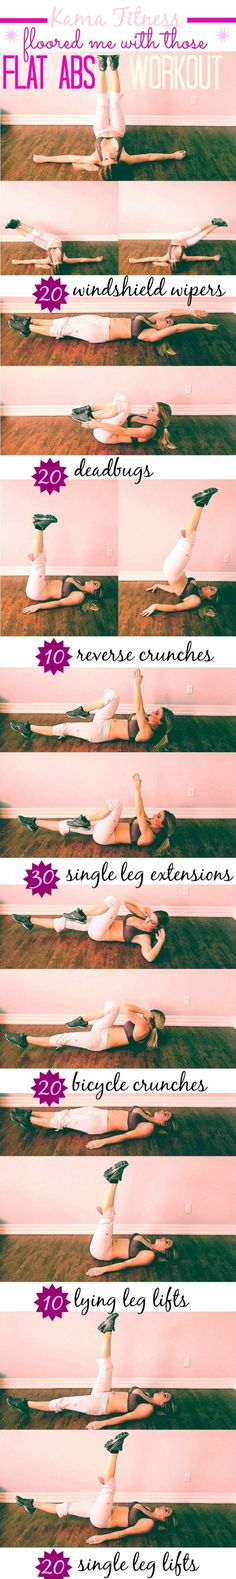 Awesome Ab #workout! Try these exercises and remember to focus on your core!